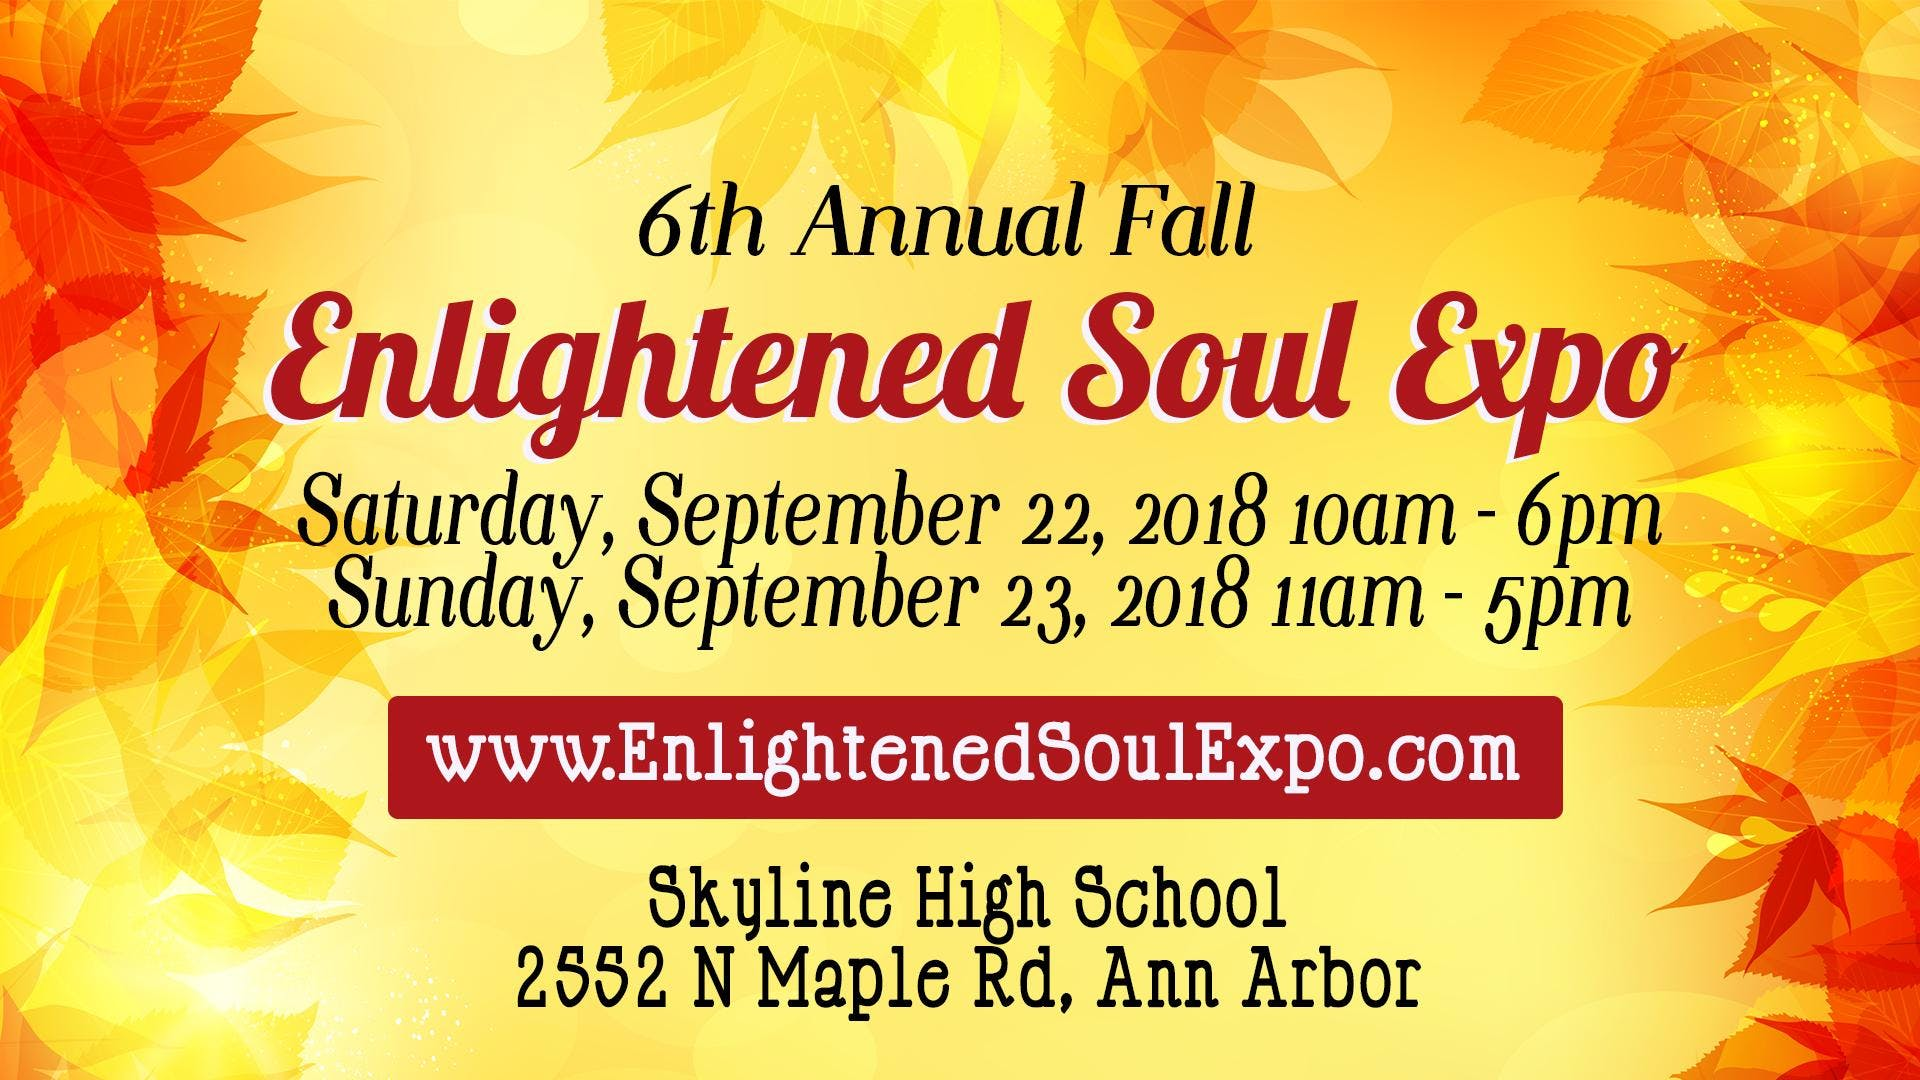 6th Annual Fall Enlightened Soul Expo